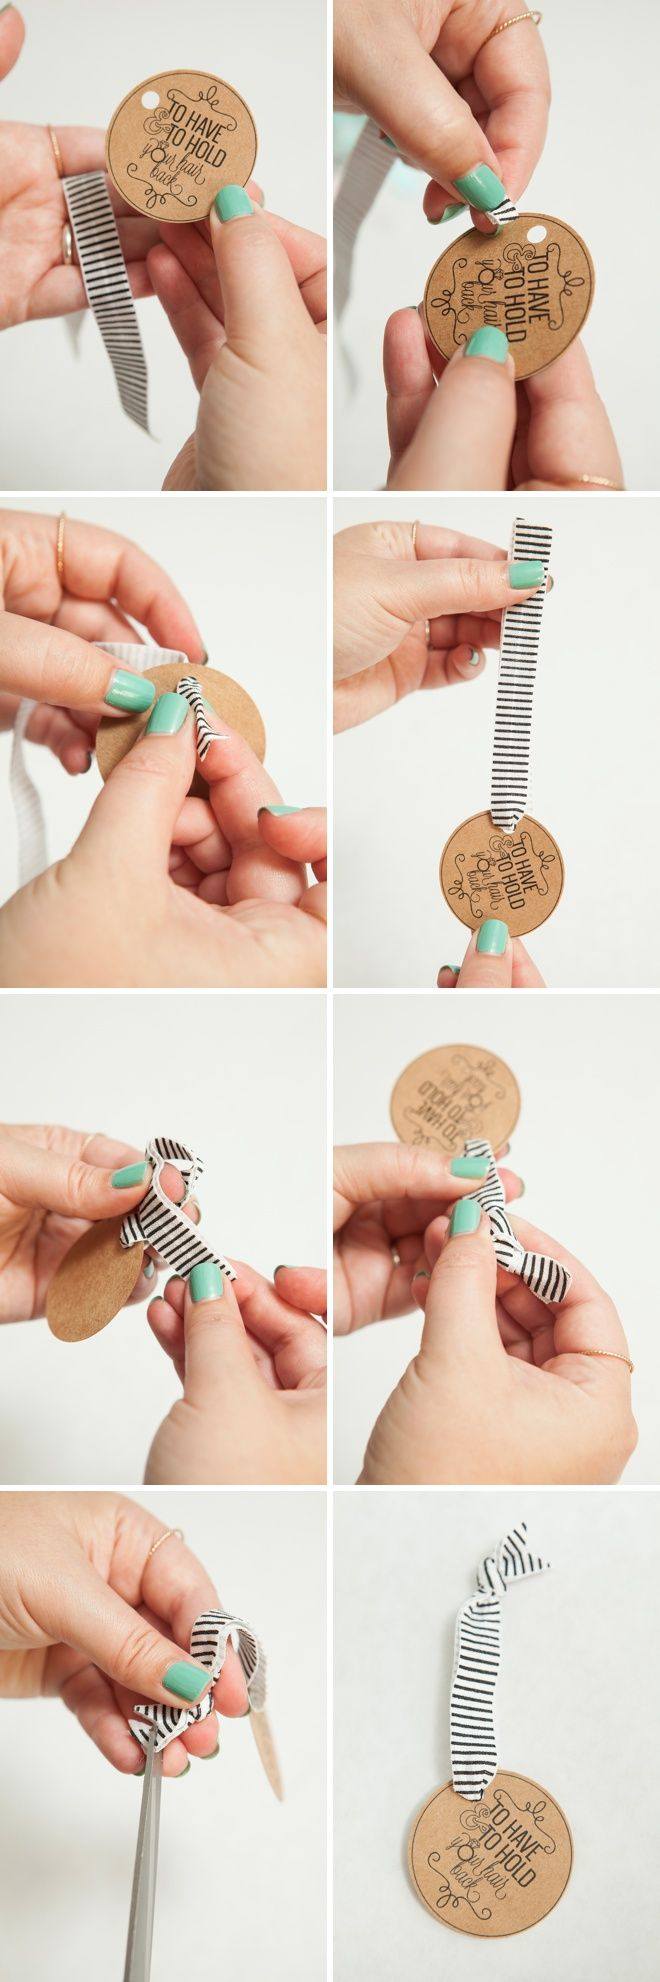 "DIY - Bachelorette Party Hair Tie Favors! ""To Have And To Hold Your Hair Back"" --- LOL!!!"